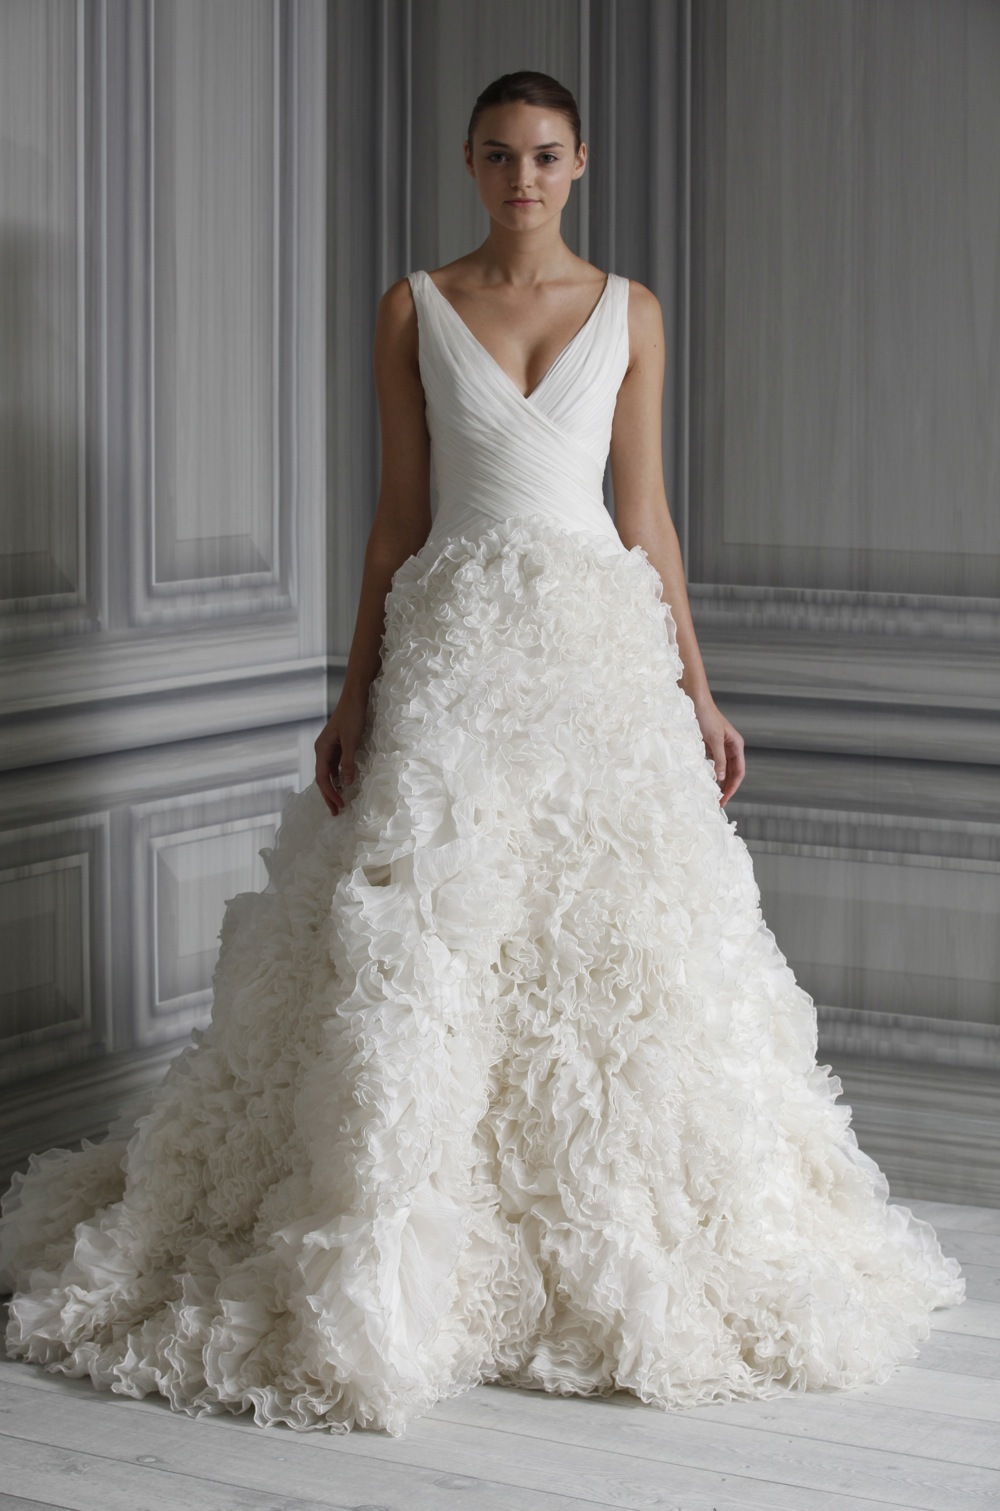 Wedding-dress-monique-lhuillier-bridal-gowns-spring-2012-legancy.full